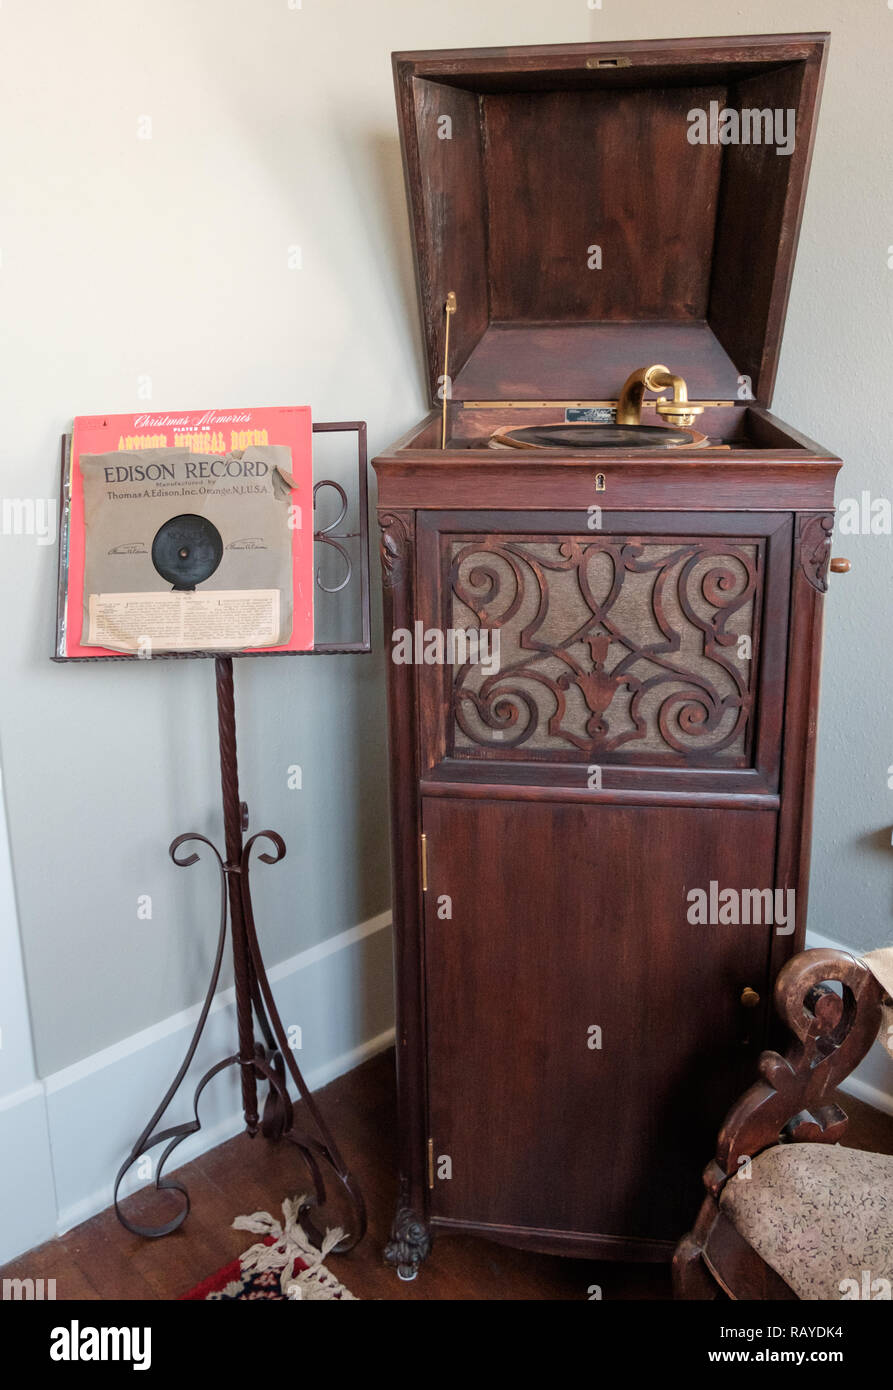 Antique record player in wooden cabinet with music stand & Edison record. Interior of Historic Texan Home, Chestnut Square Village, McKinney, Texas. - Stock Image